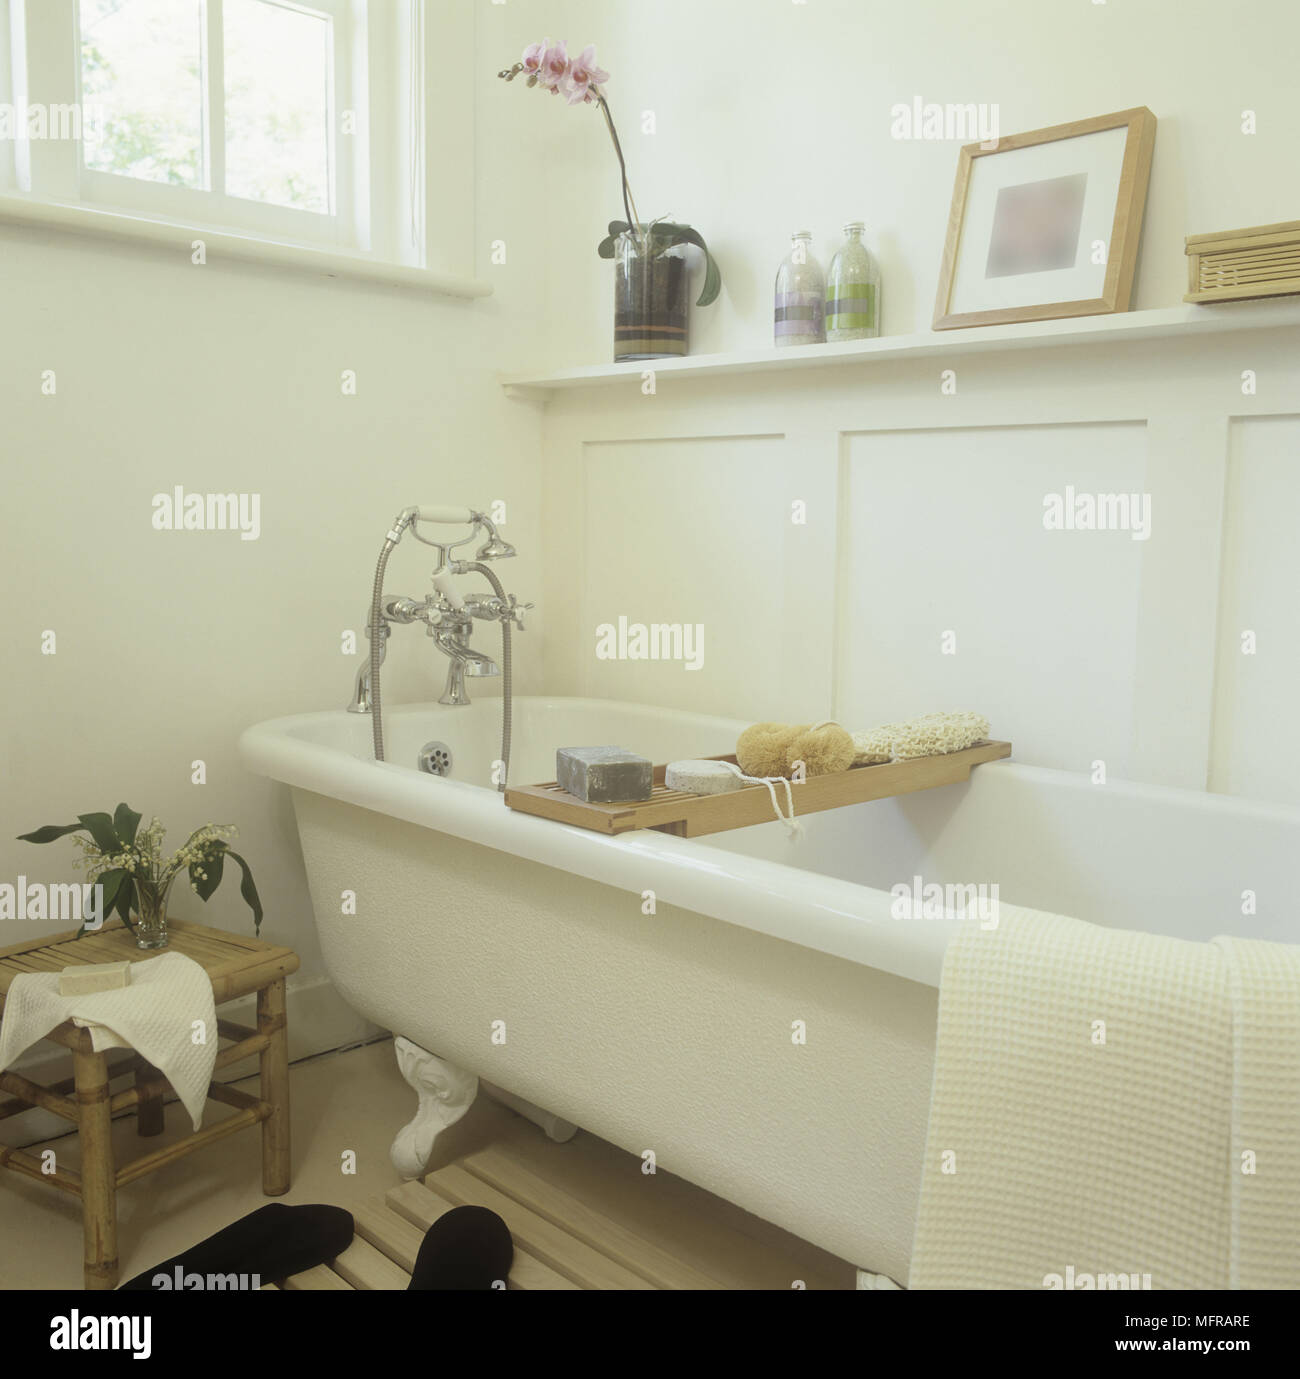 Country style bathroom with a free standing bathtub Stock Photo ...